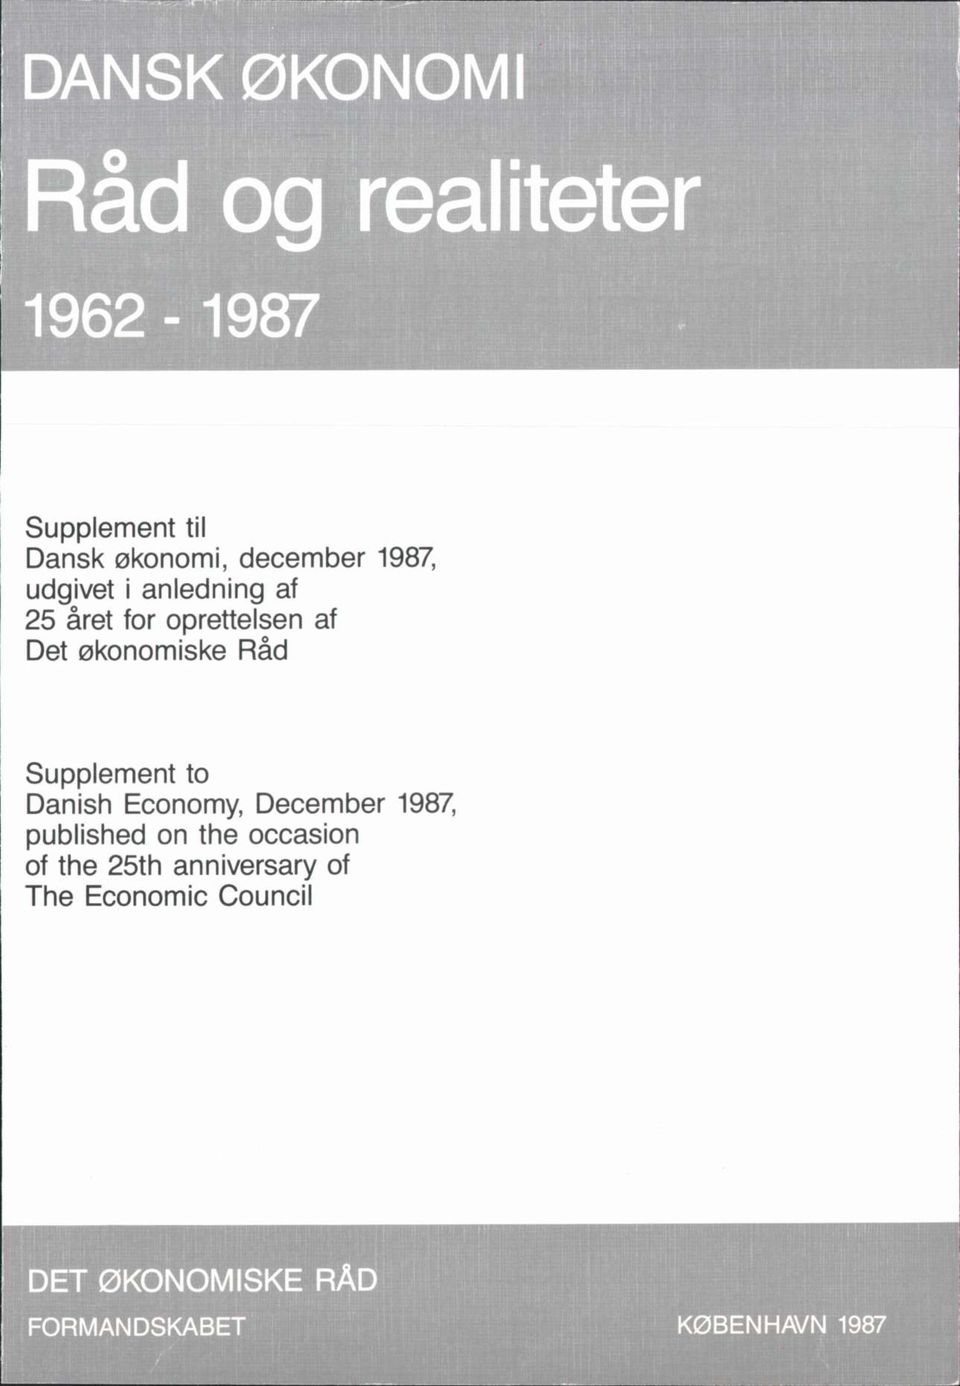 Supplement to Danish Economy, December 1987, published on the occasion of the